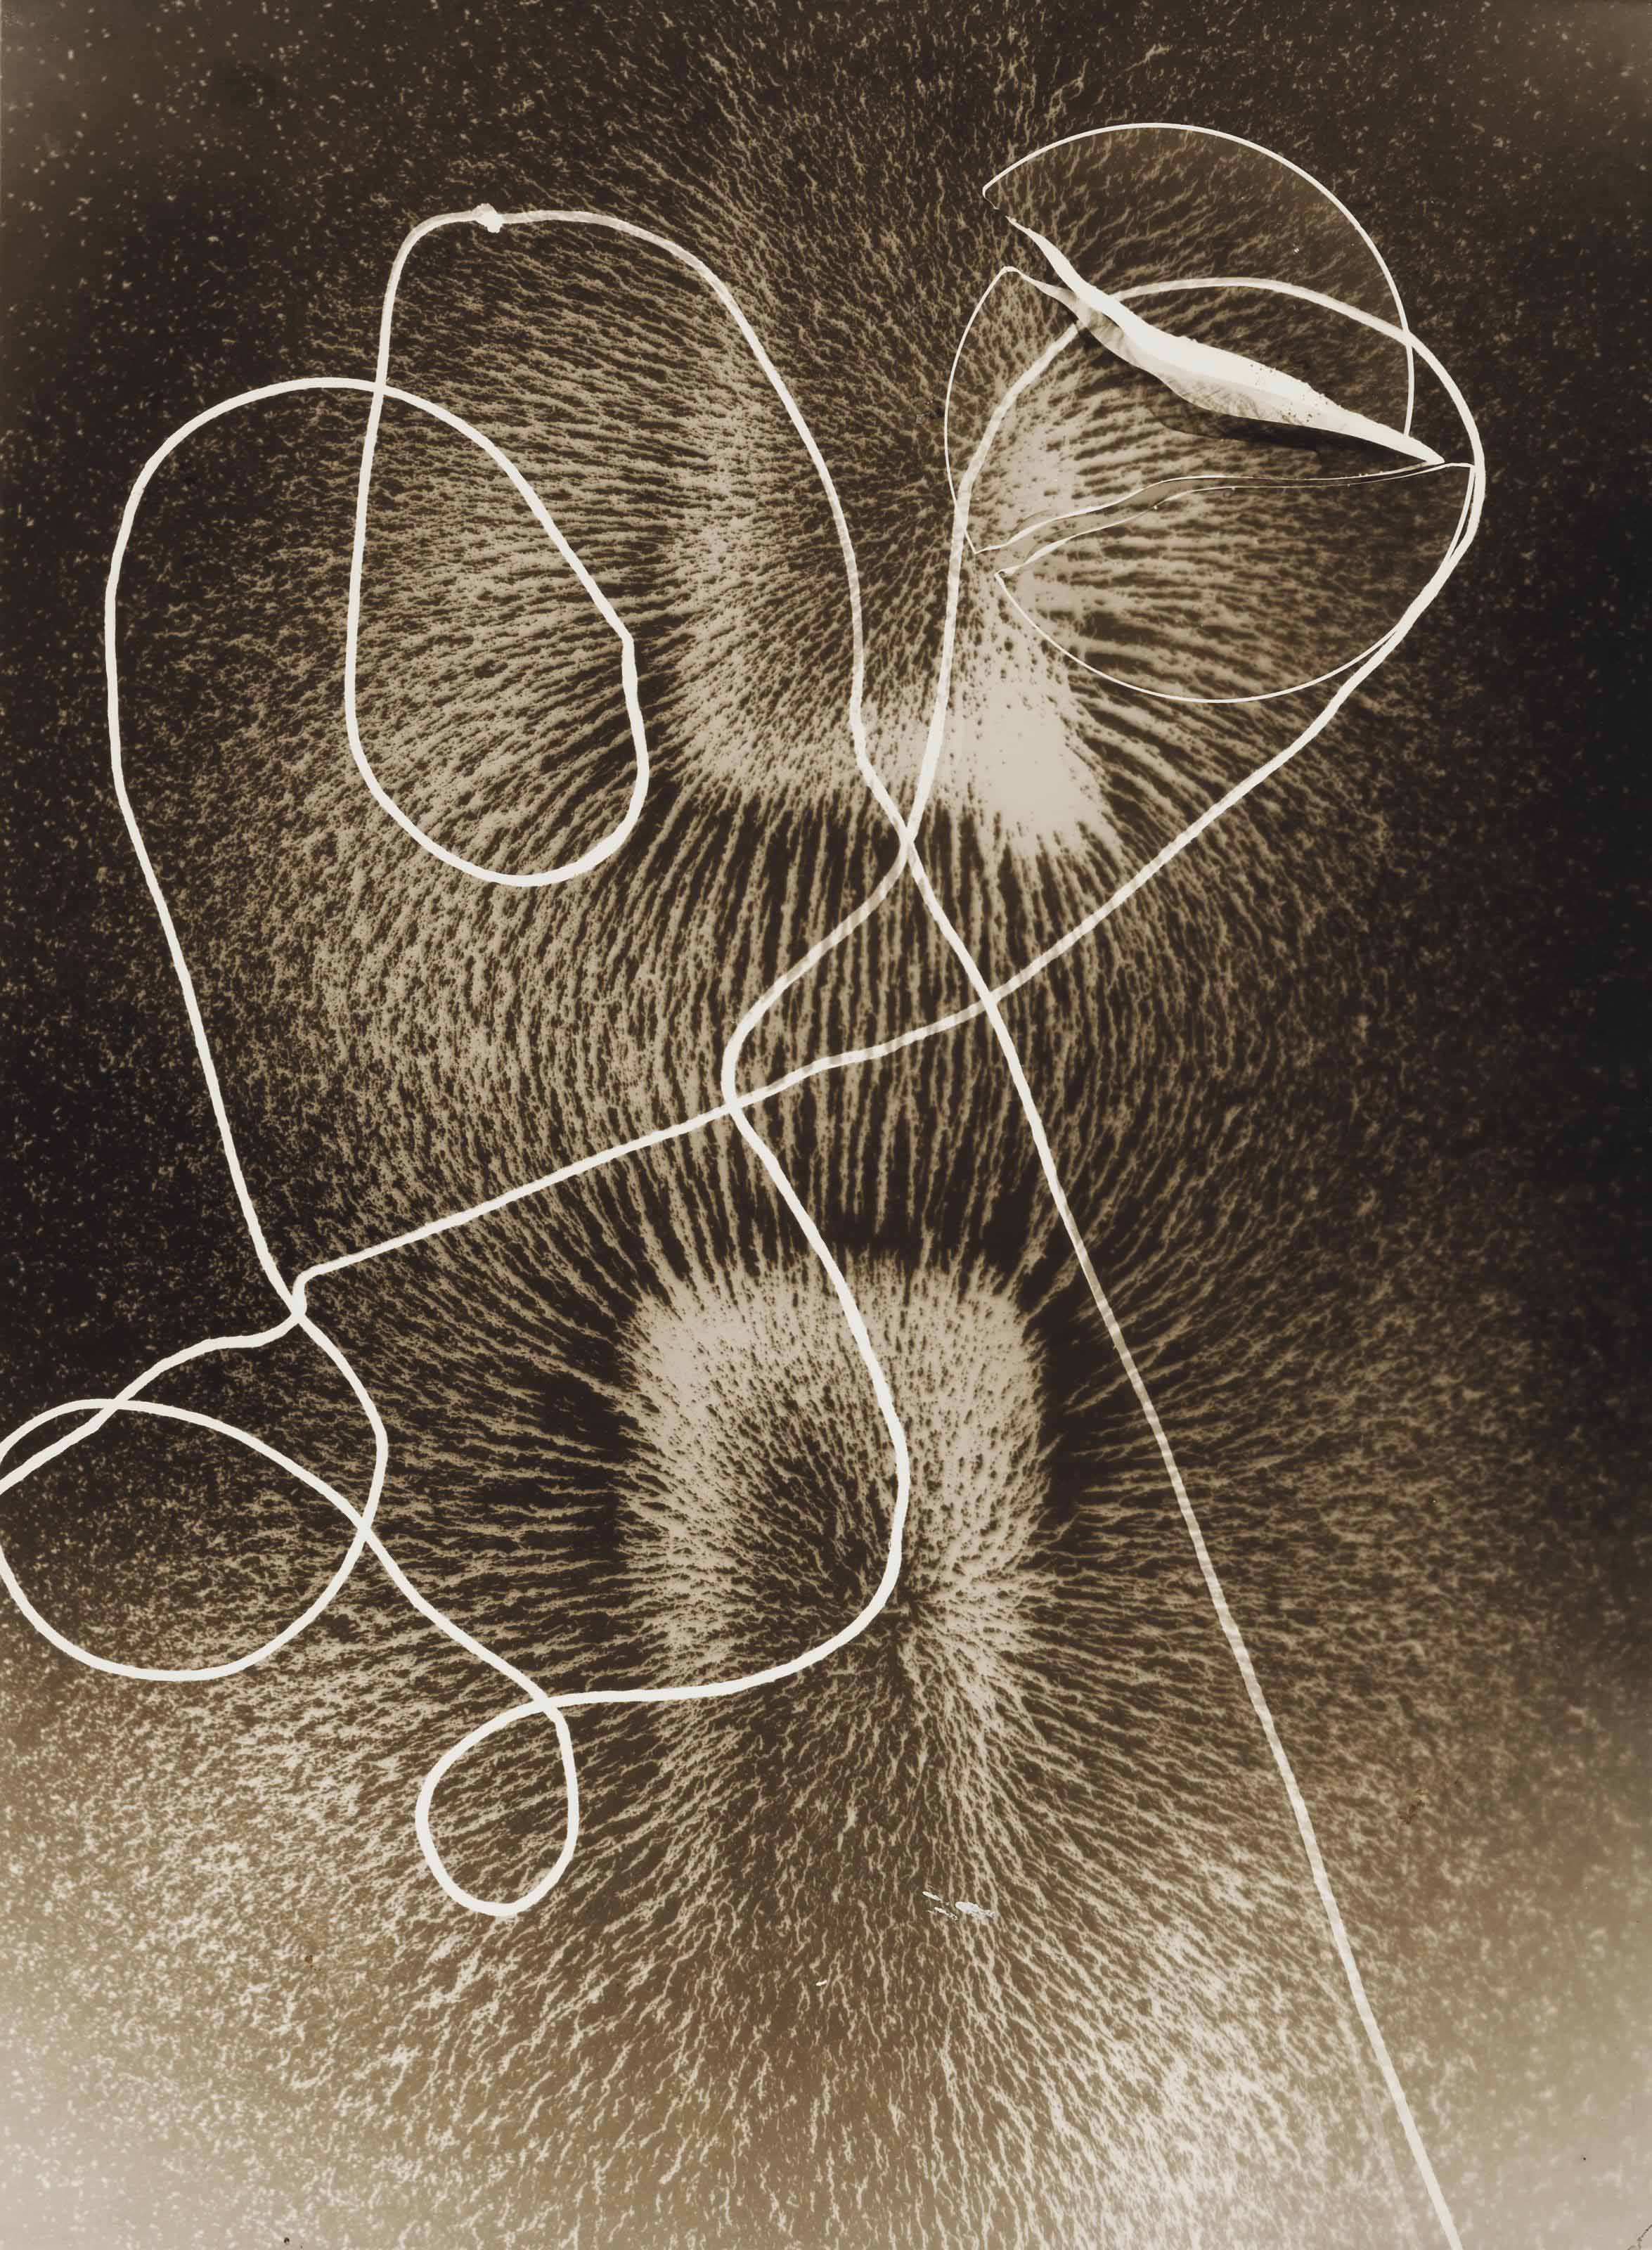 String and Brush, c. 1939